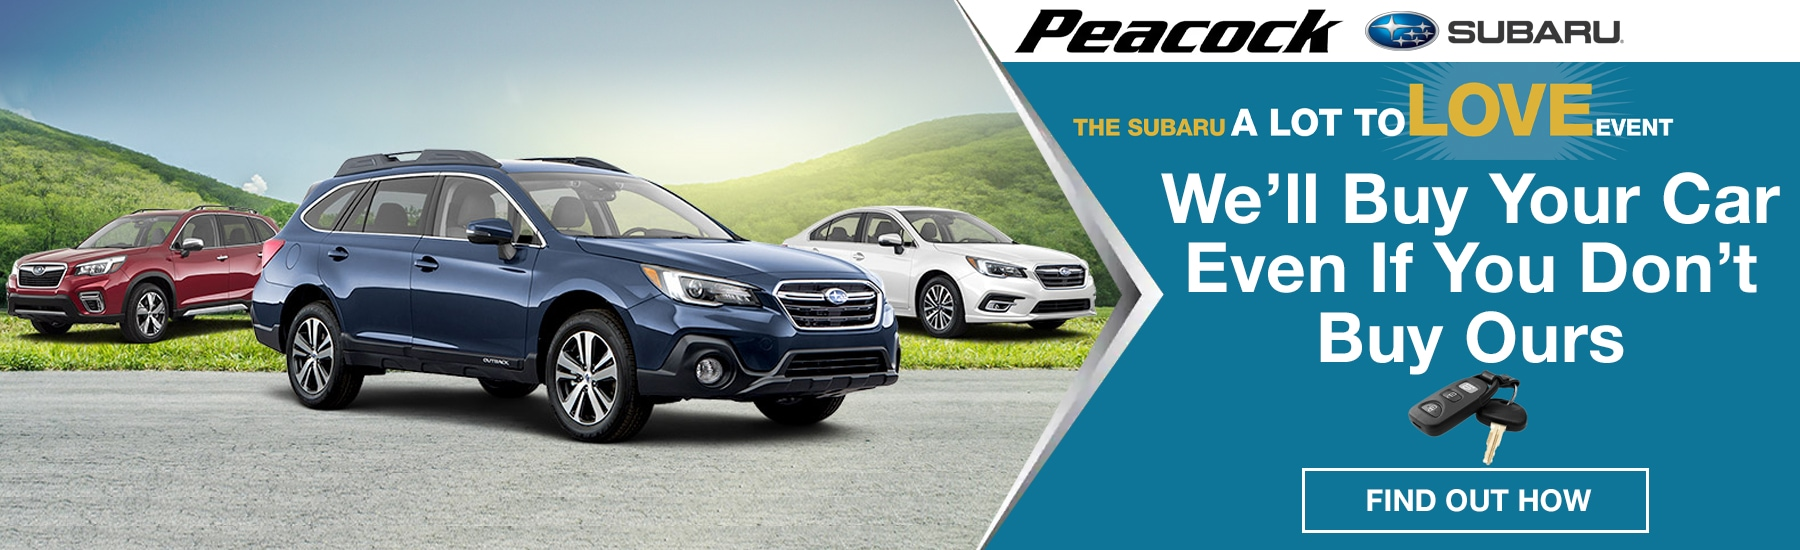 New Subaru Dealer Hilton Head Island SC | Peacock Subaru